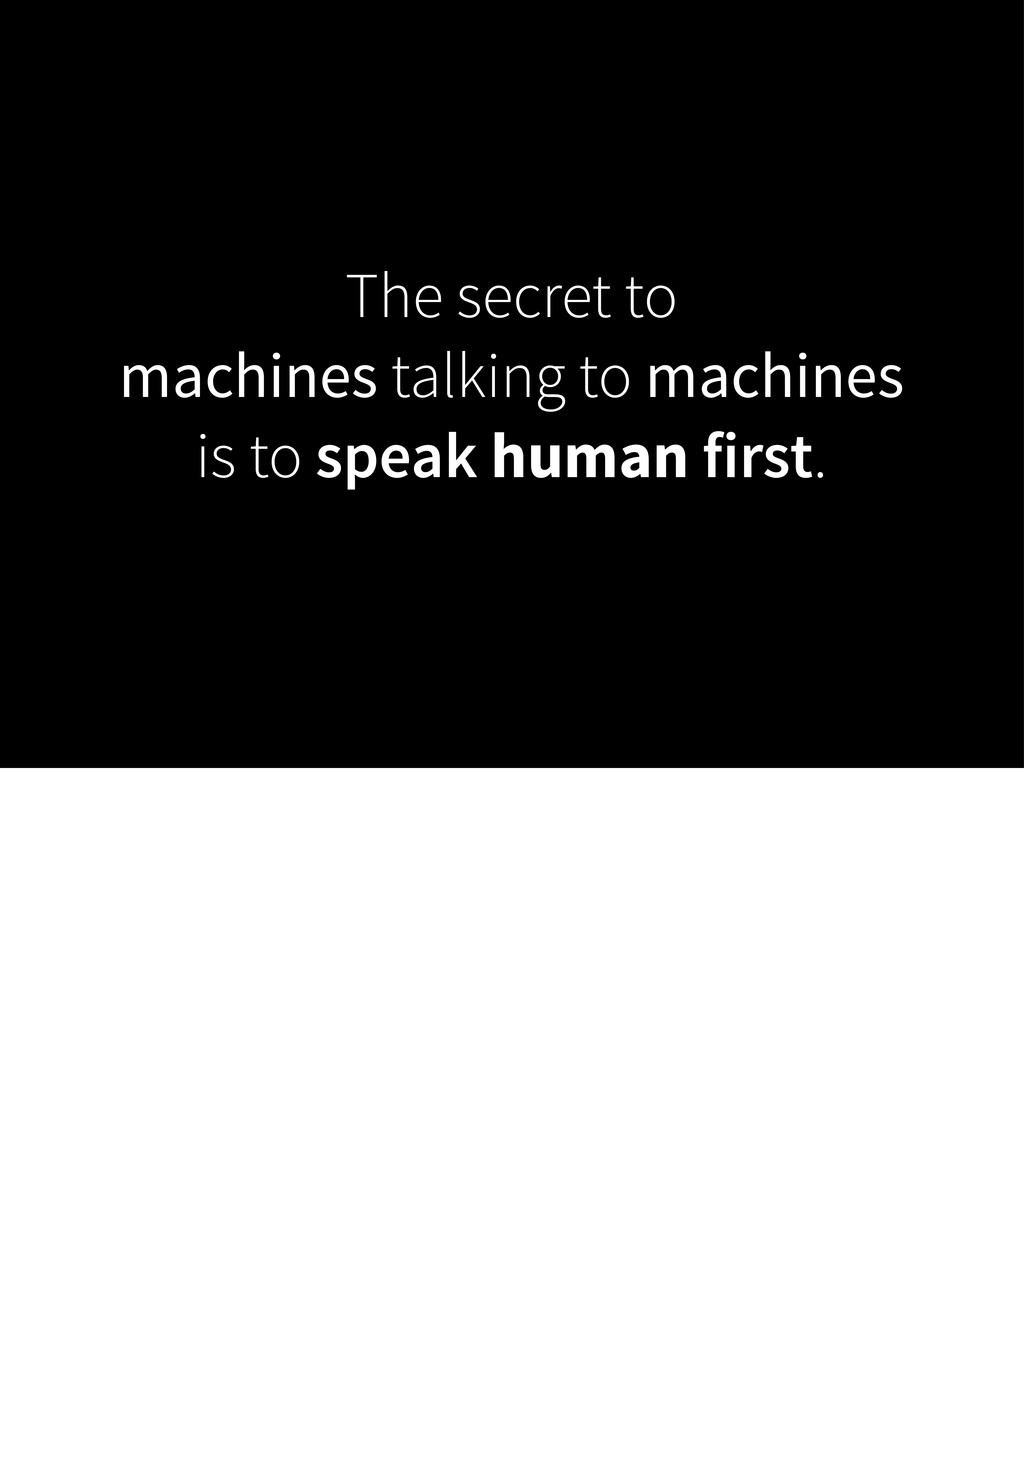 The secret to machines talking to machines is t...